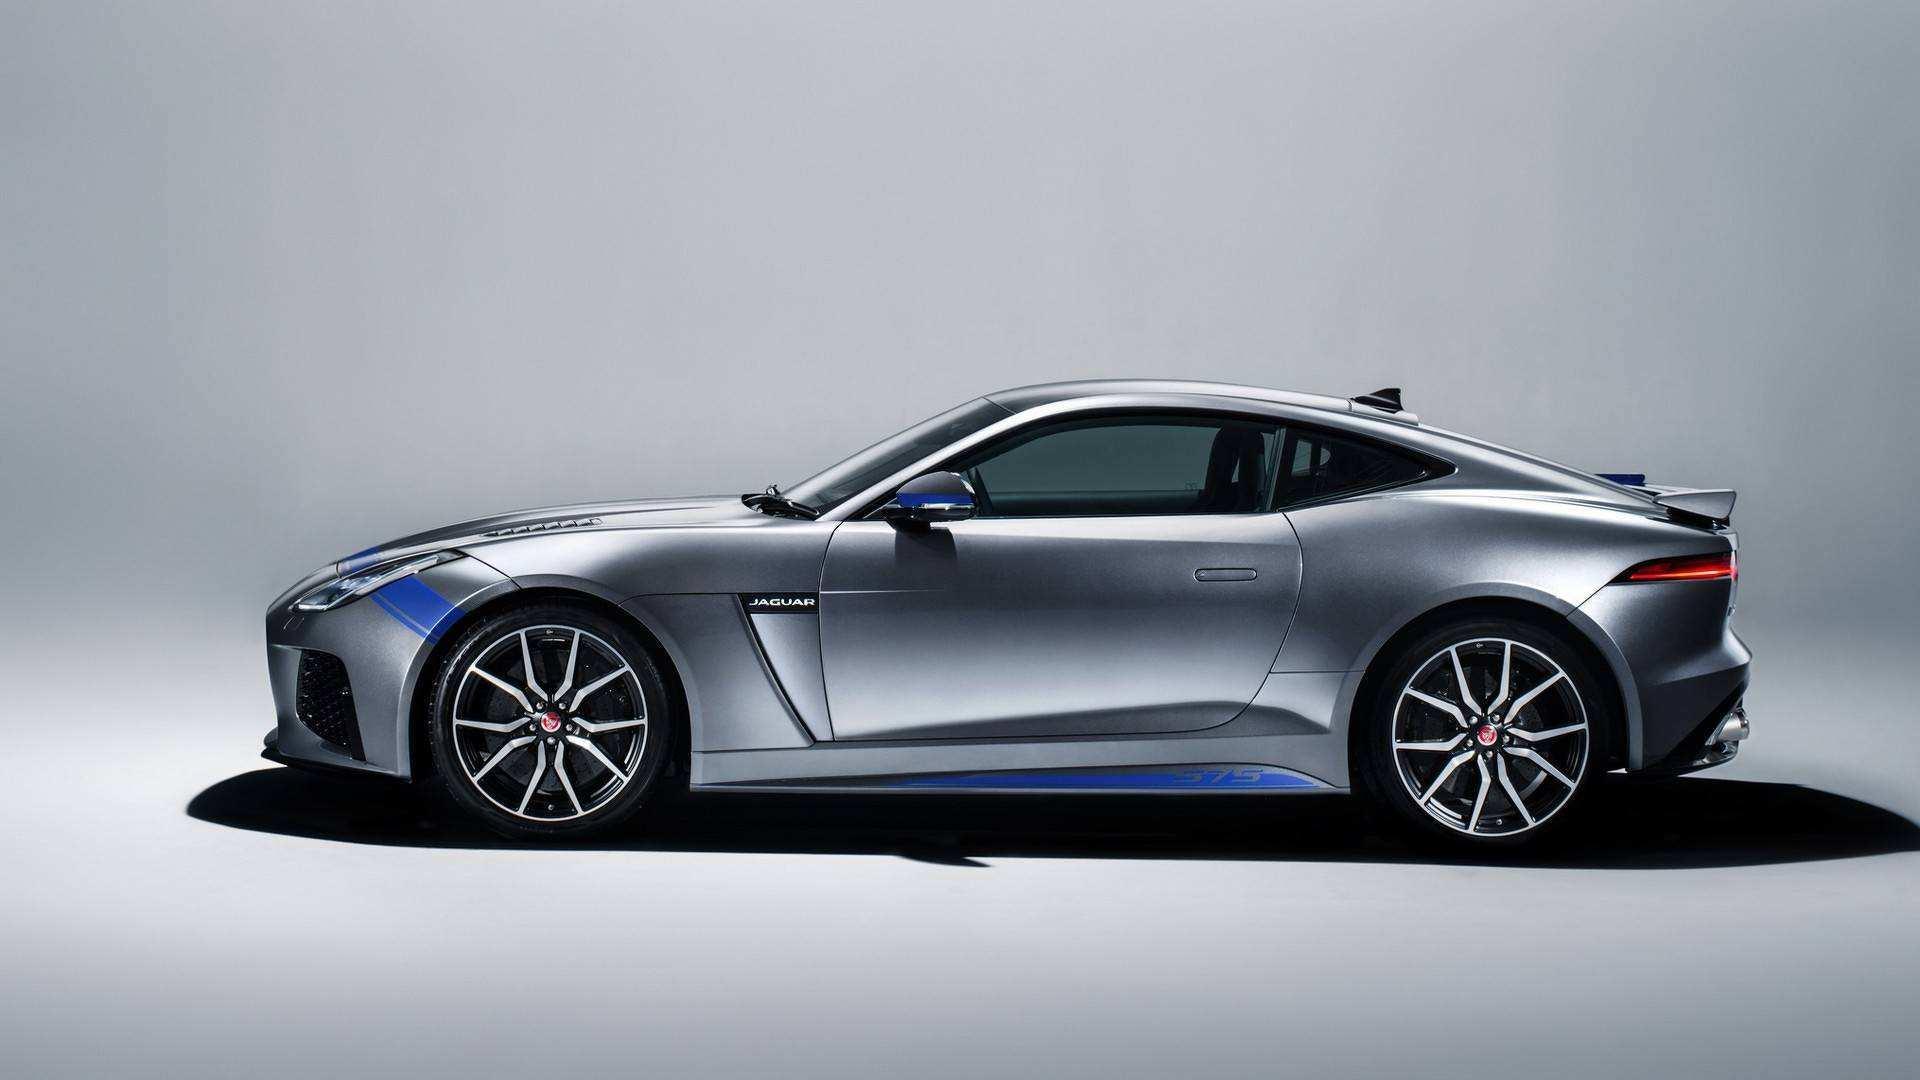 85 New 2020 Jaguar F Type Msrp New Concept